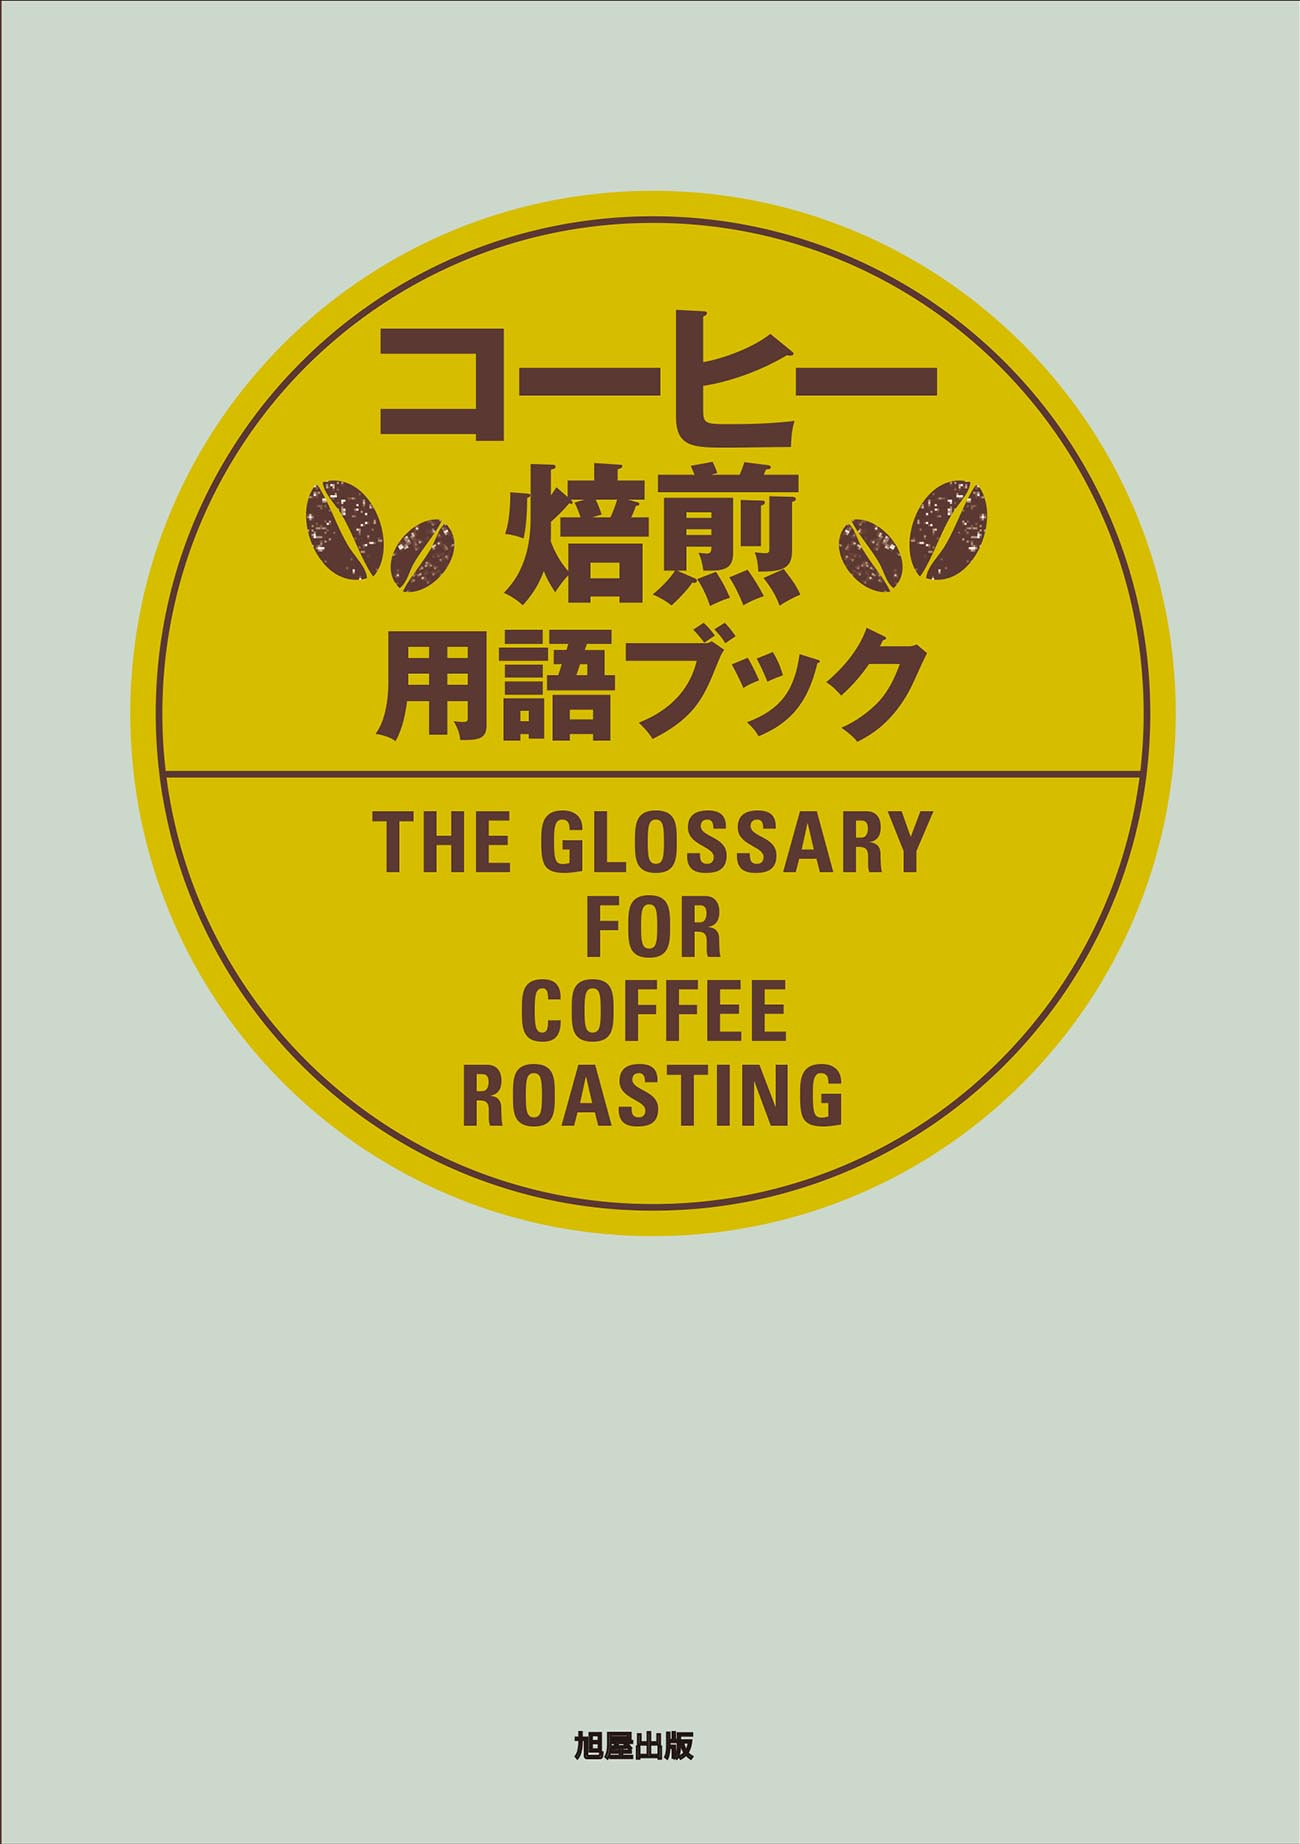 コーヒー焙煎用語ブック  THE GLOSSARY FOR COFFEE ROASTING